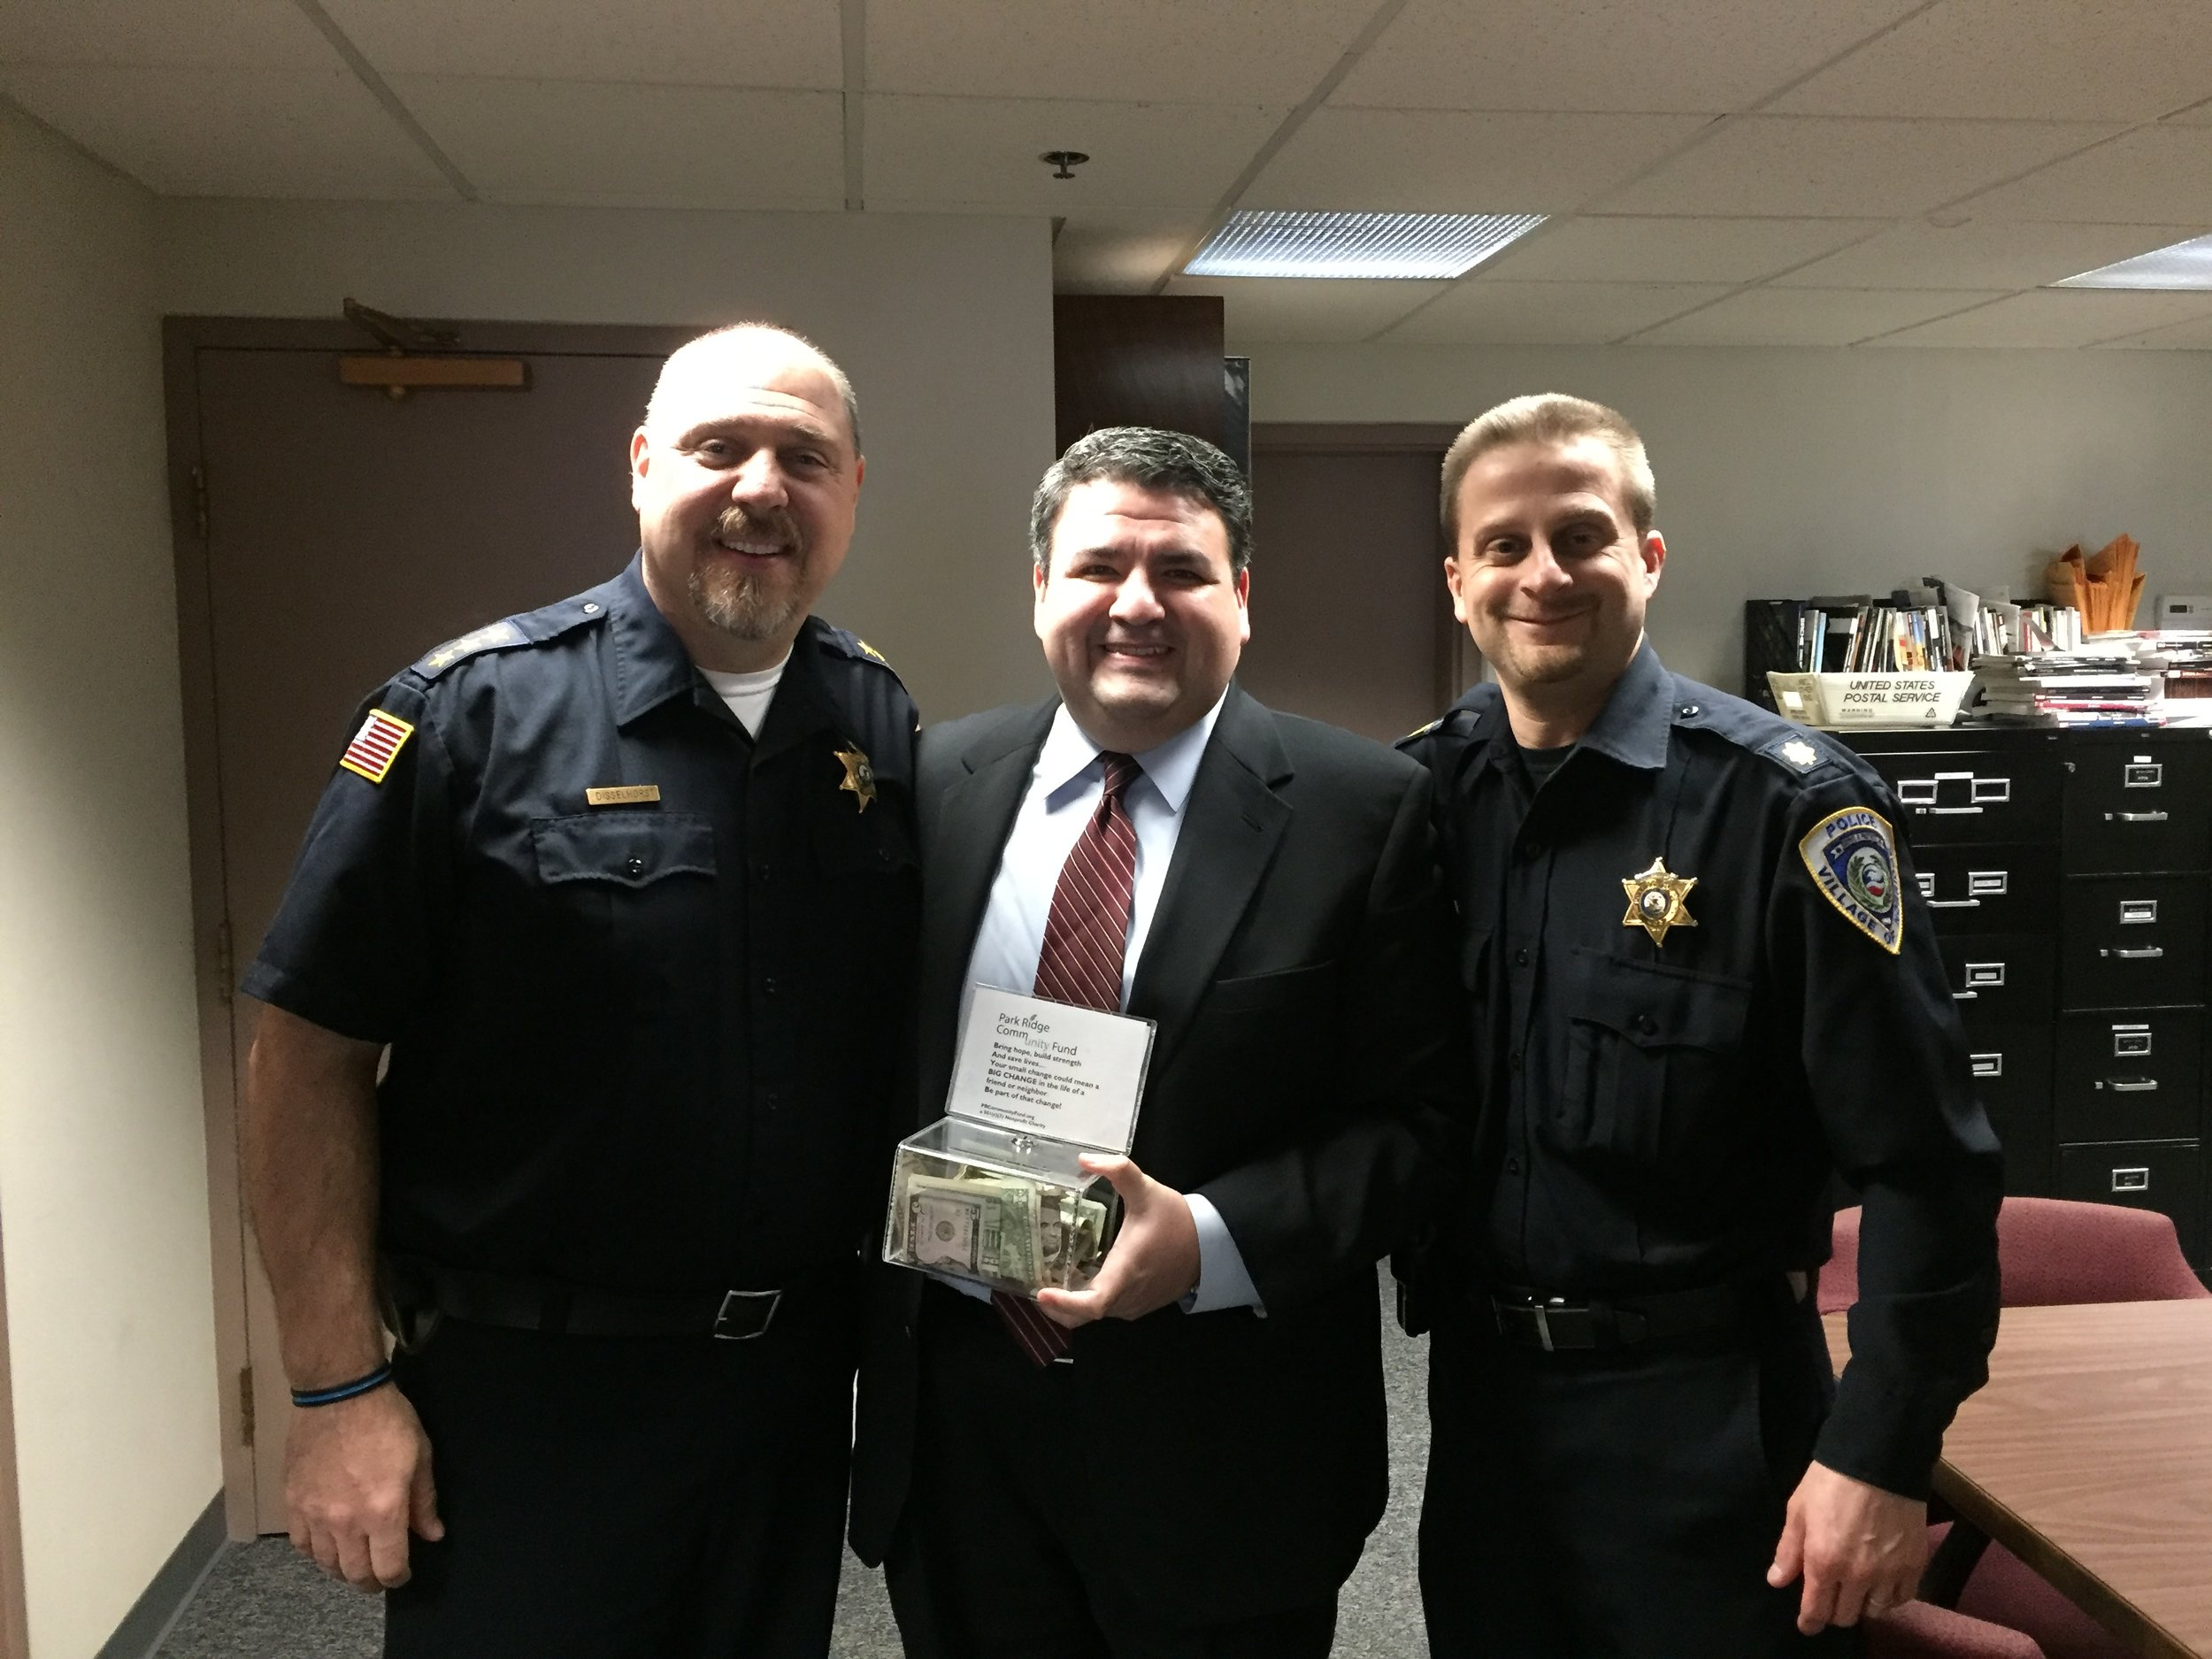 Thank you to the Village of Norridge and the Norridge PD!